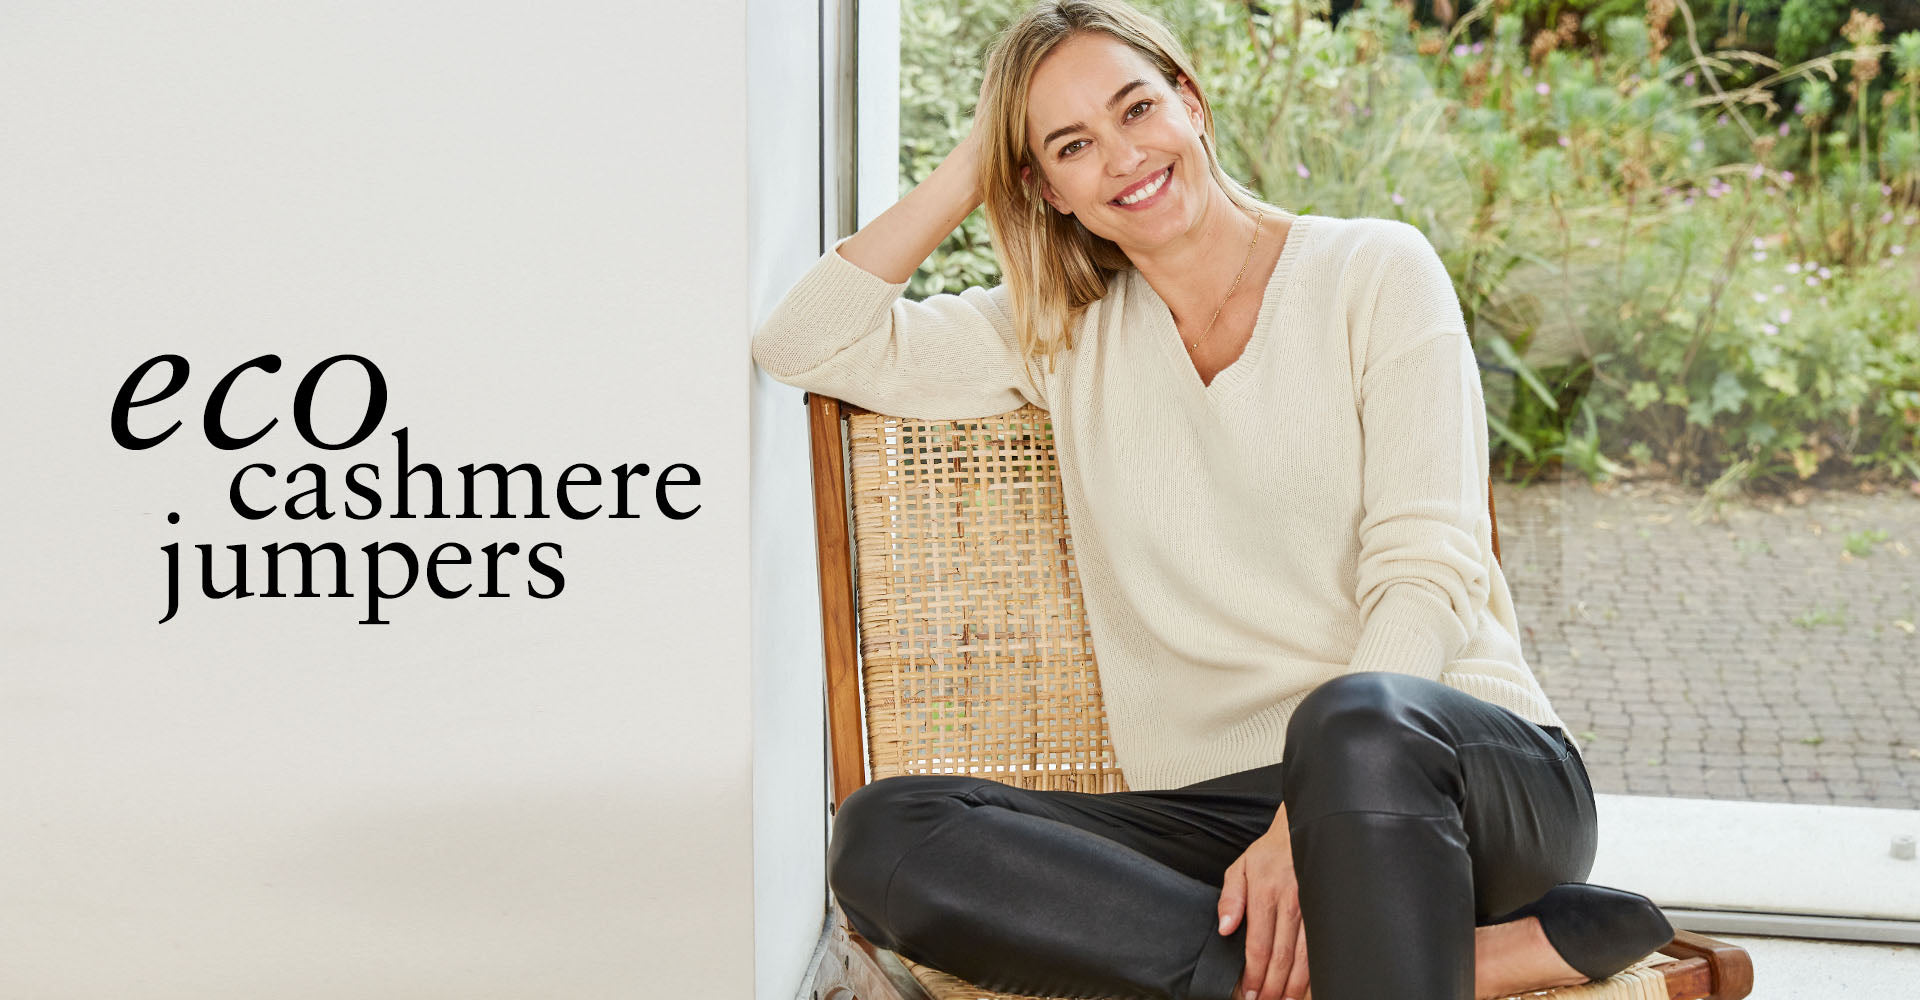 Eco Cashmere Jumpers